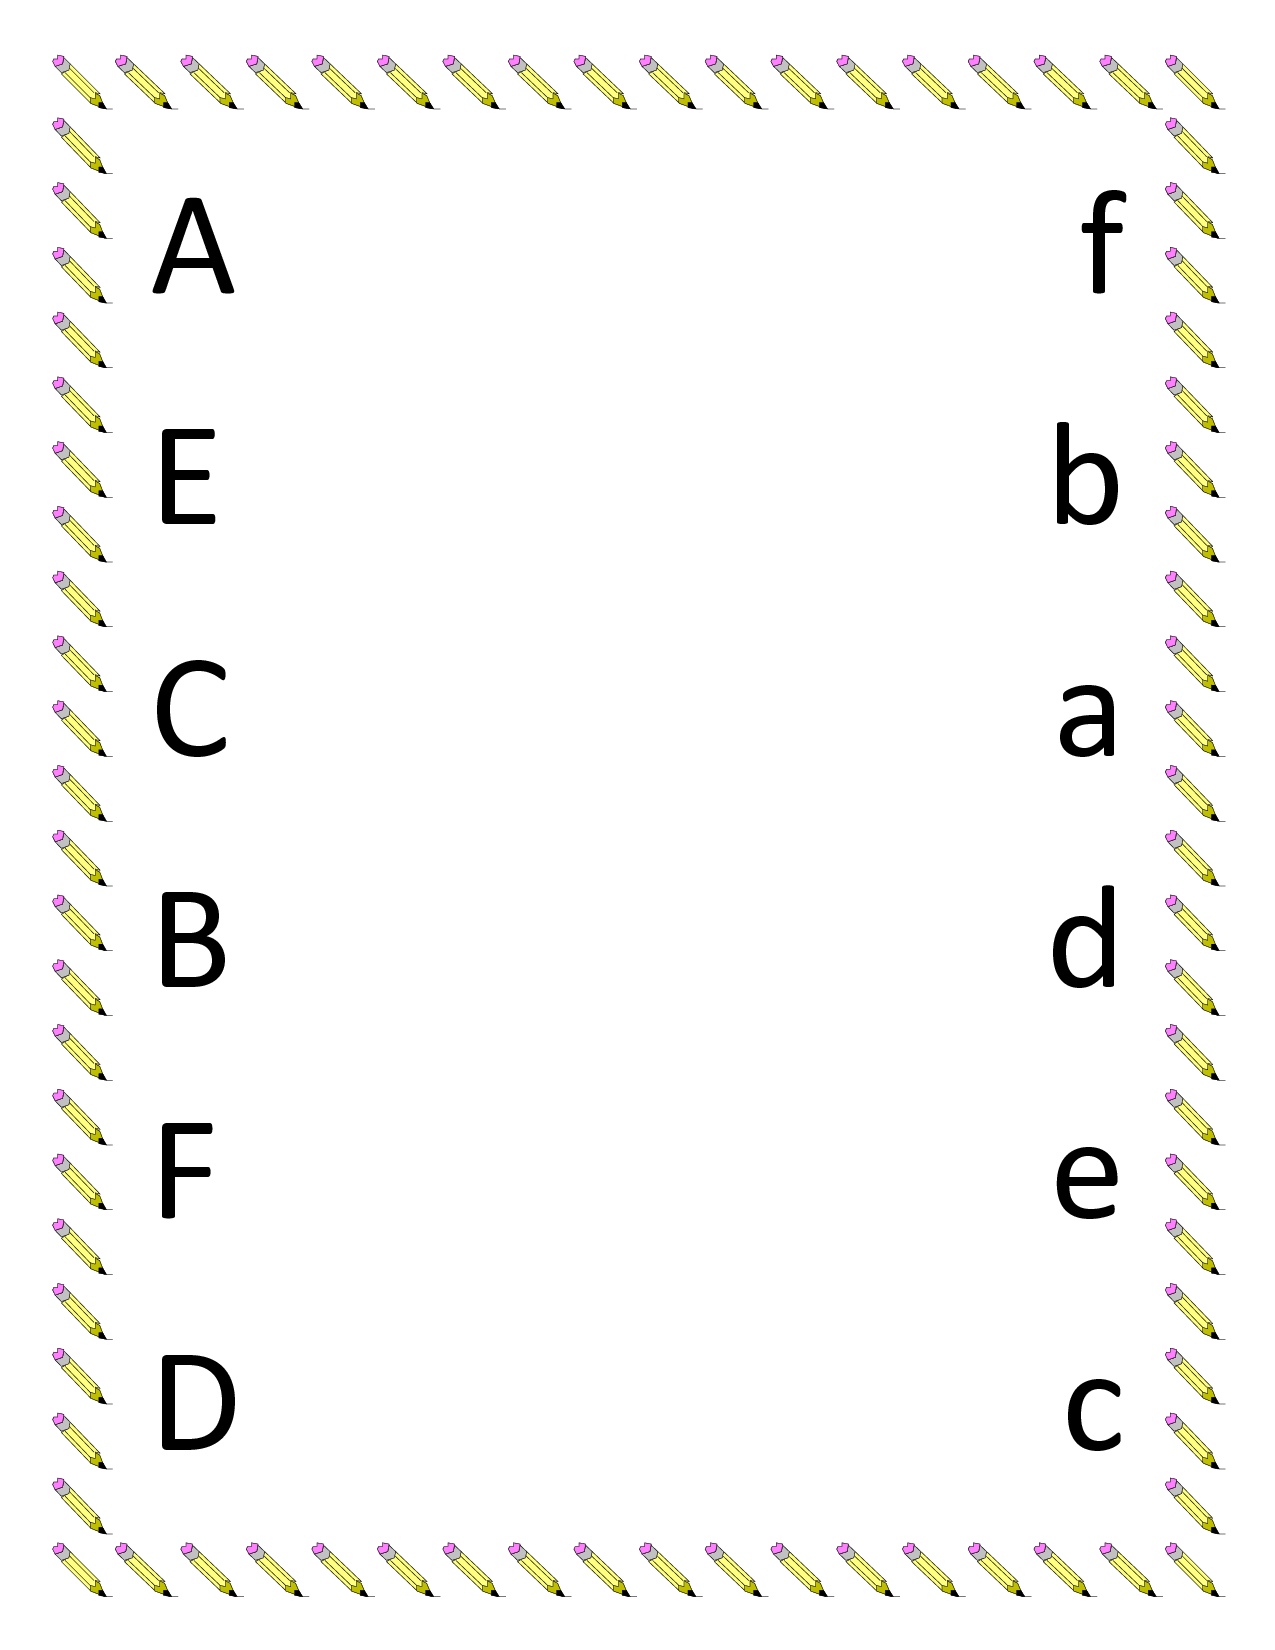 kindergarten worksheets Preschool worksheets – Number Matching Worksheets for Kindergarten